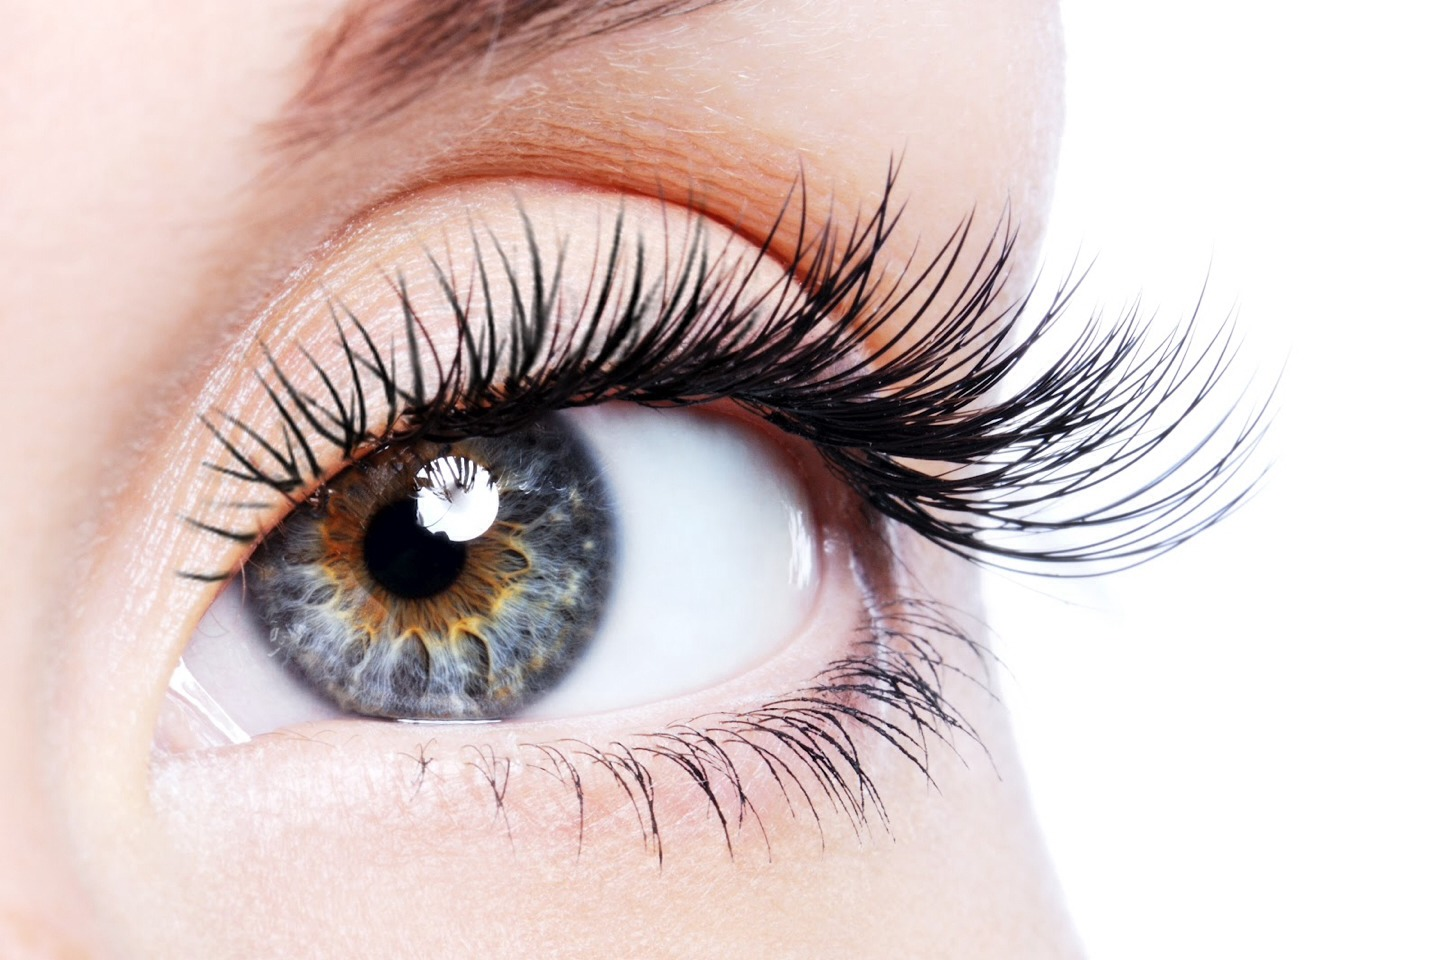 In need for longer eyelashes? Every night for about 2-3 weeks apply Vaseline or Coconut oil to your lashes.( I personally prefer coconut oil) They won't grow in just a day so be patient.